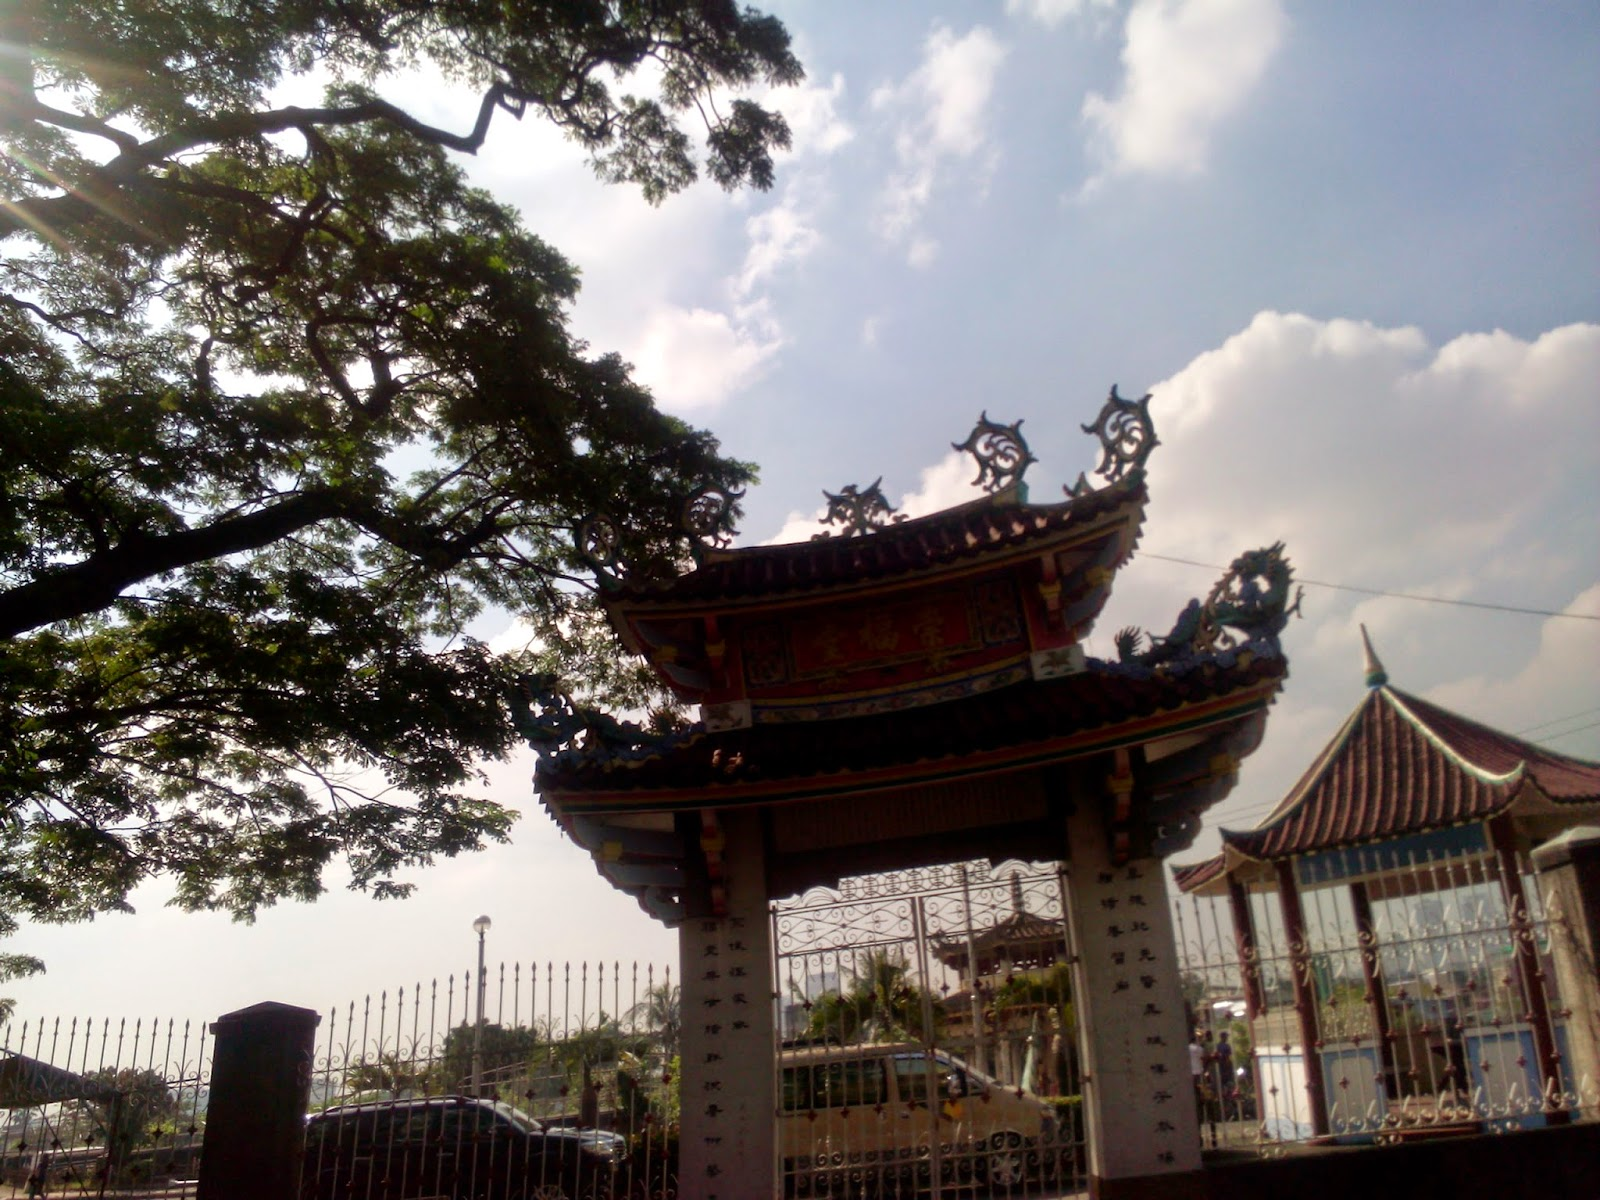 LOVERBOYZ AVENUE: Walk with Chan: Manila Chinese Cemetery by foot